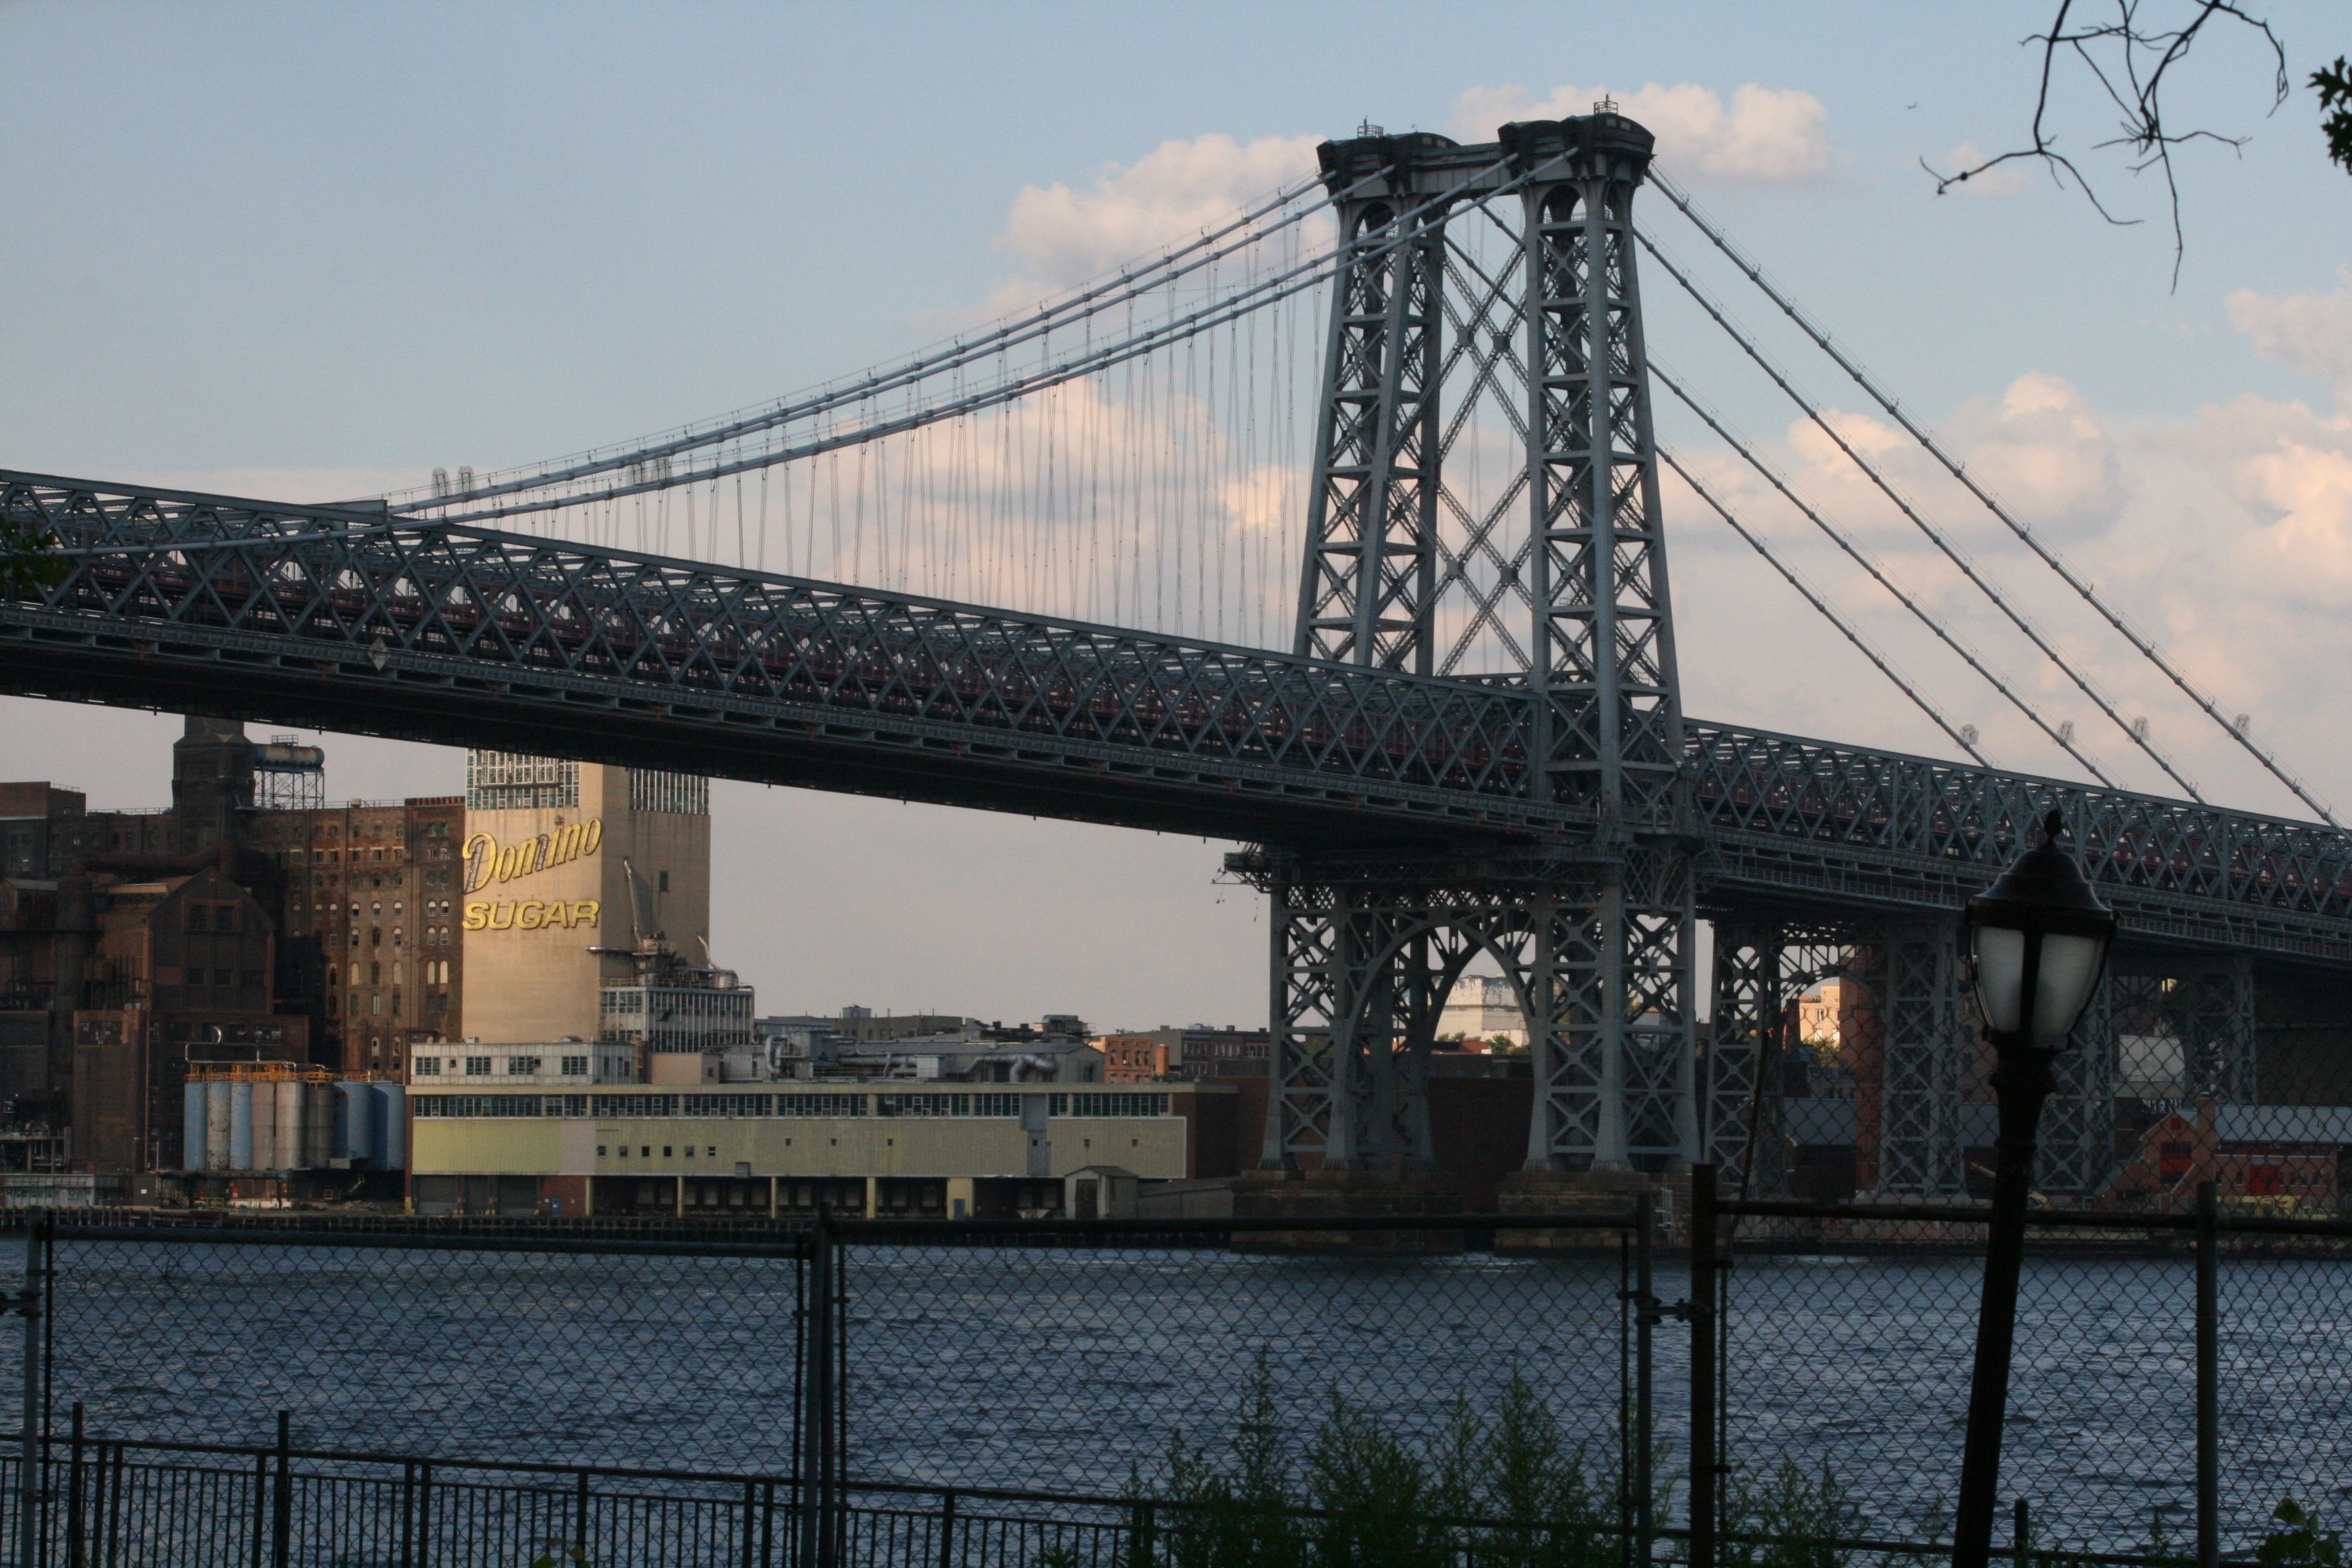 The Williamsburg Bridge and a view of the Brooklyn waterfront as seen from New York City's Lower East Side.